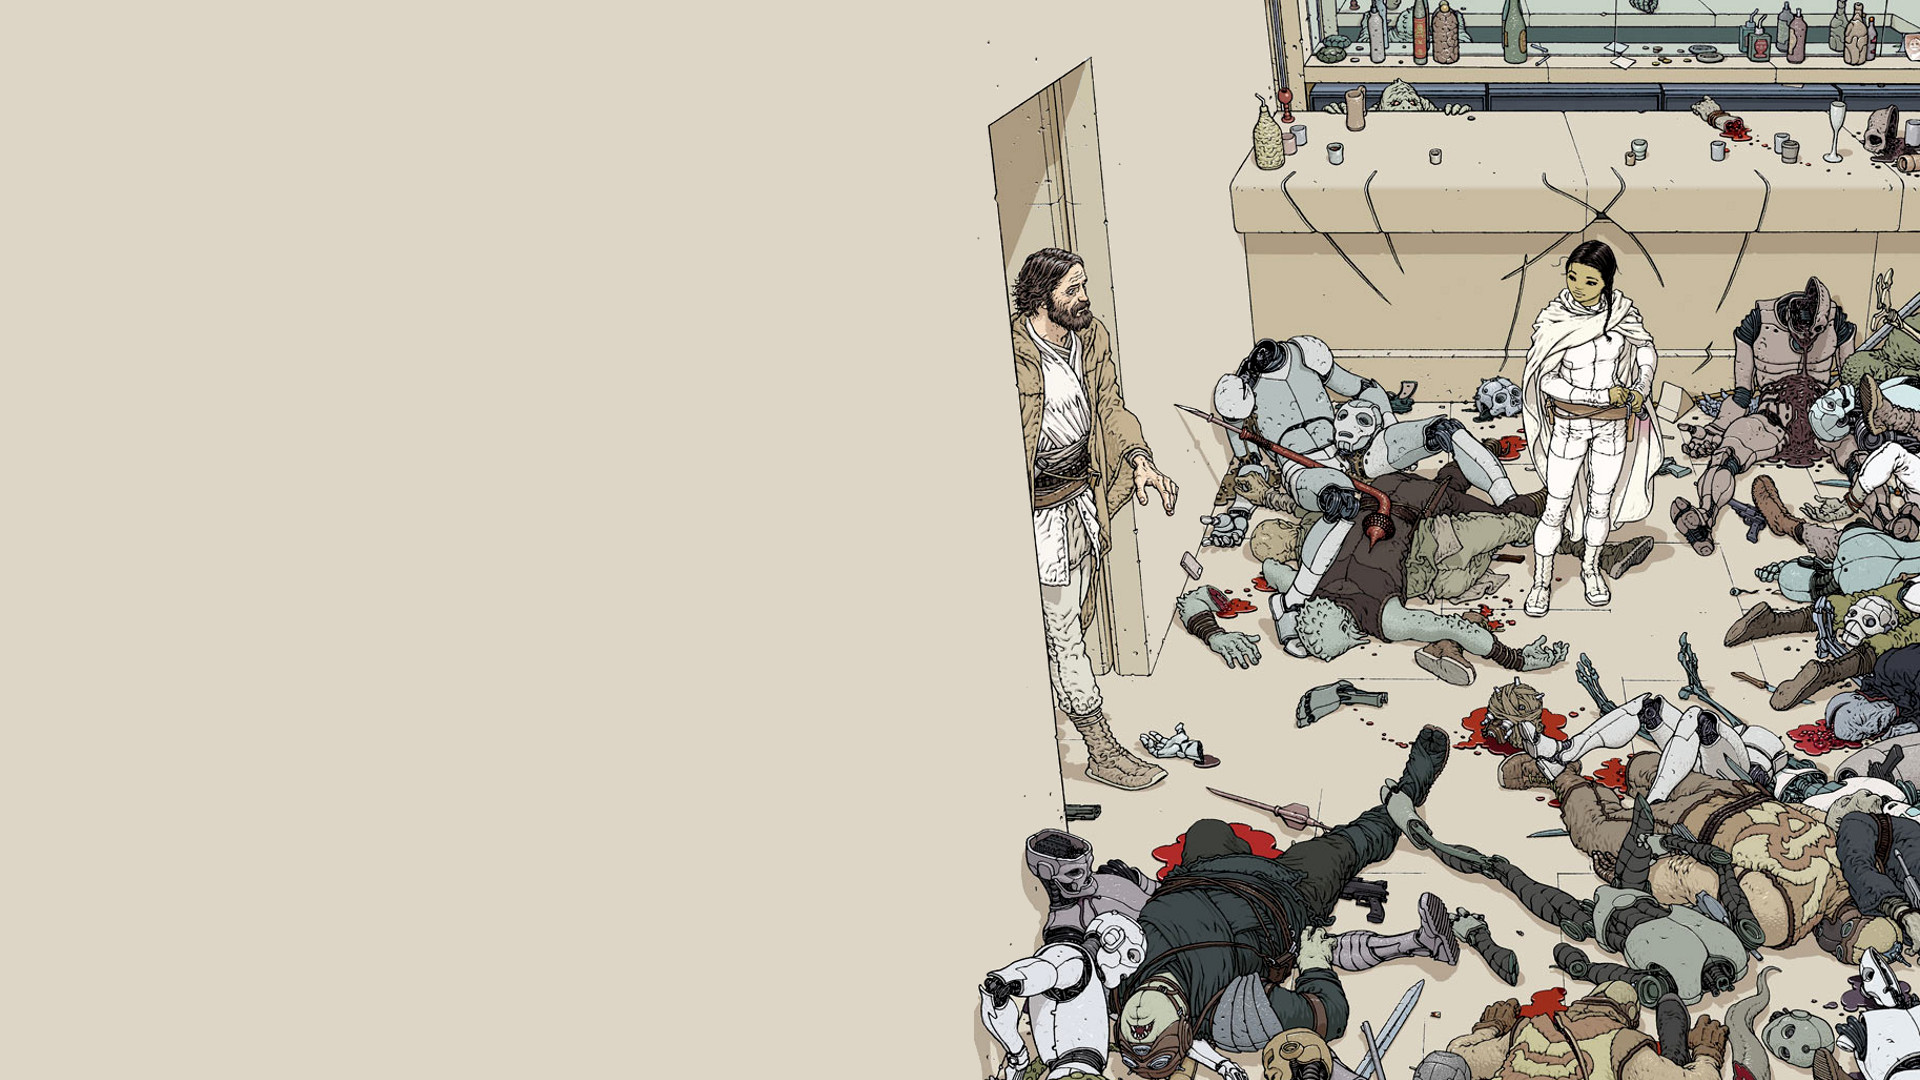 Photo 17 Jul 10 notes · Star wars by Frank Quitely